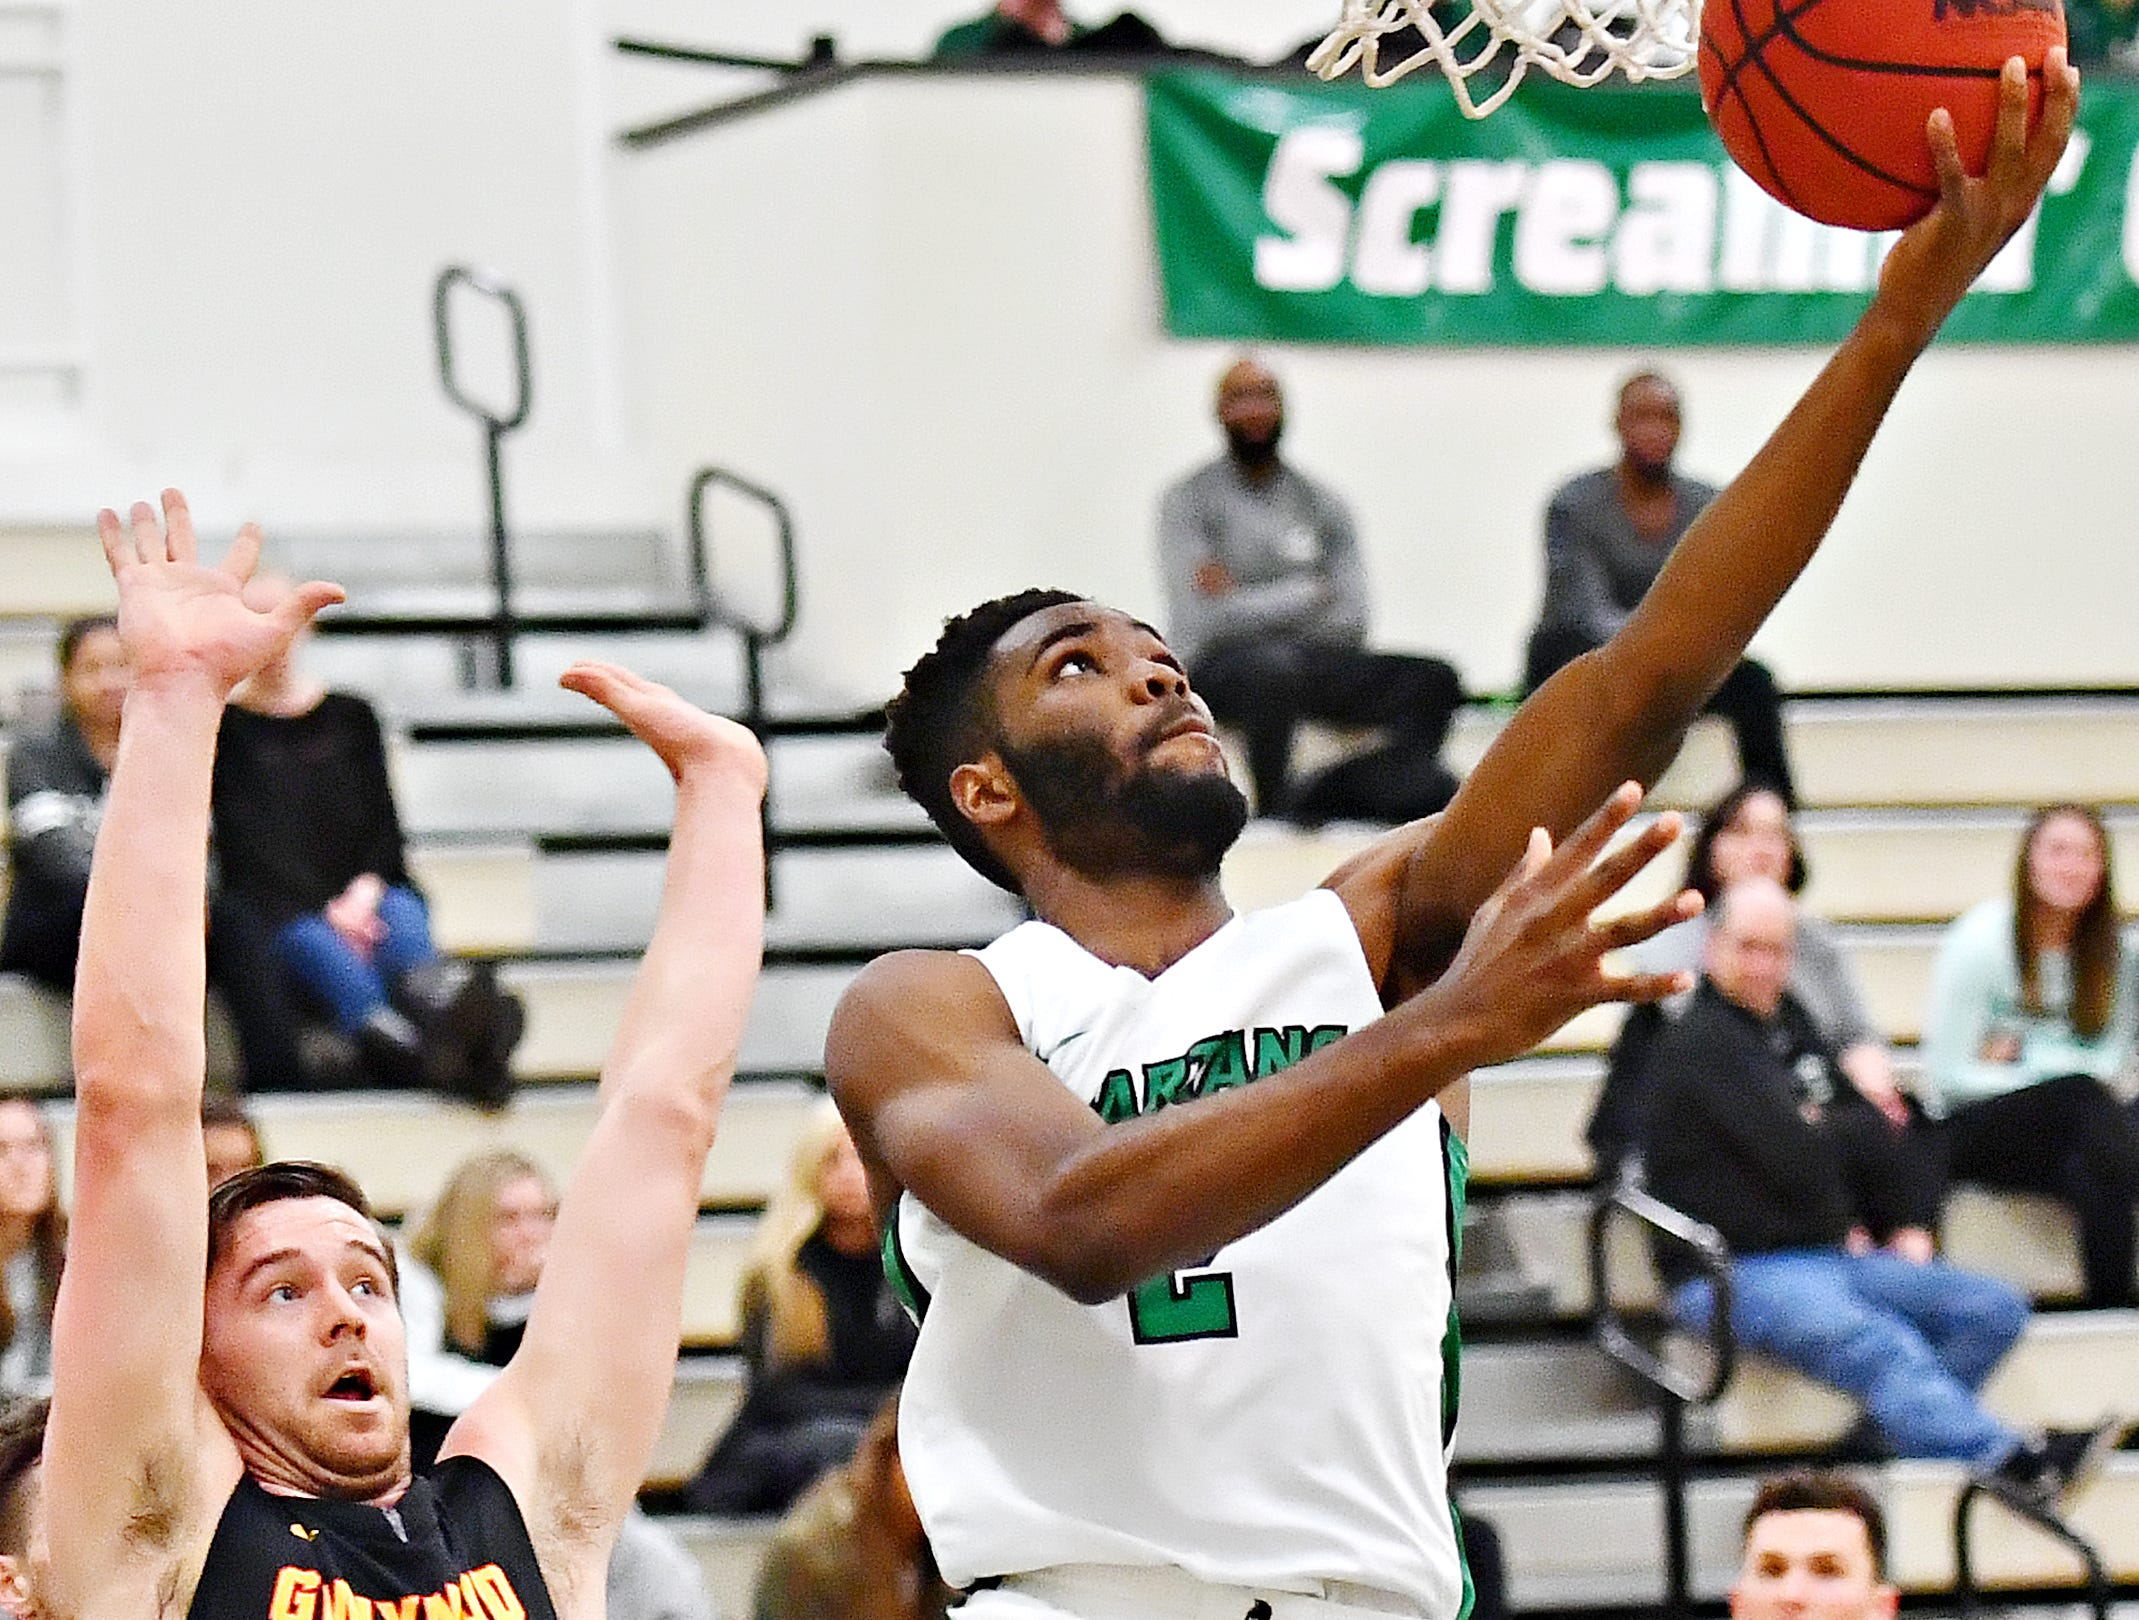 York College's Jason Bady takes the ball to the basket during men's basketball action against Gwynedd-Mercy at Grumbacher Sport and Fitness Center in Spring Garden Township, Wednesday, Nov. 28, 2018. Dawn J. Sagert photo